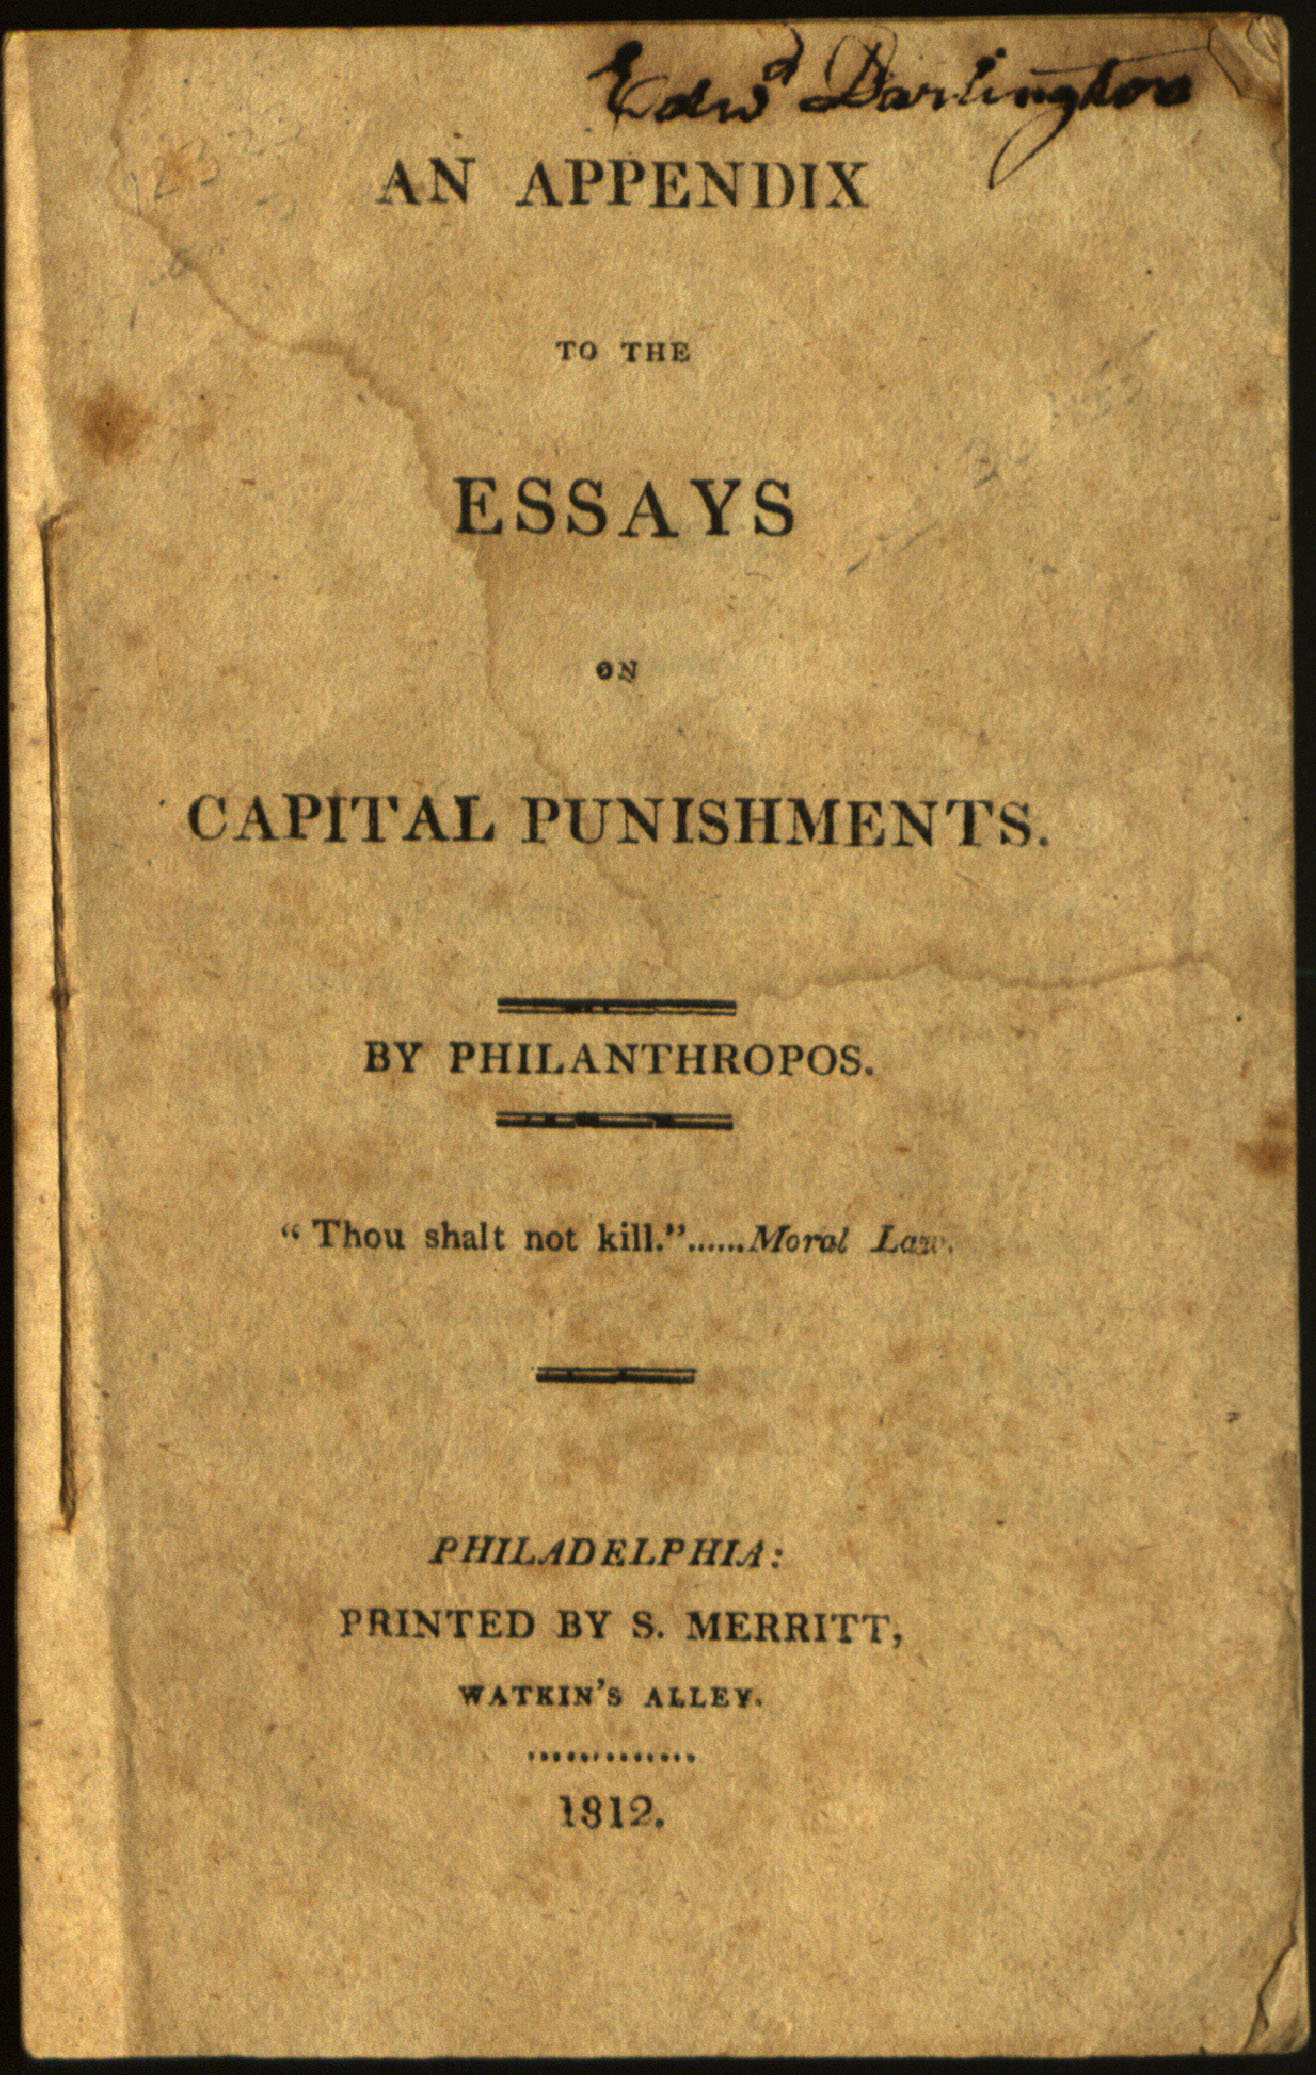 Essay Against Capital Punishment